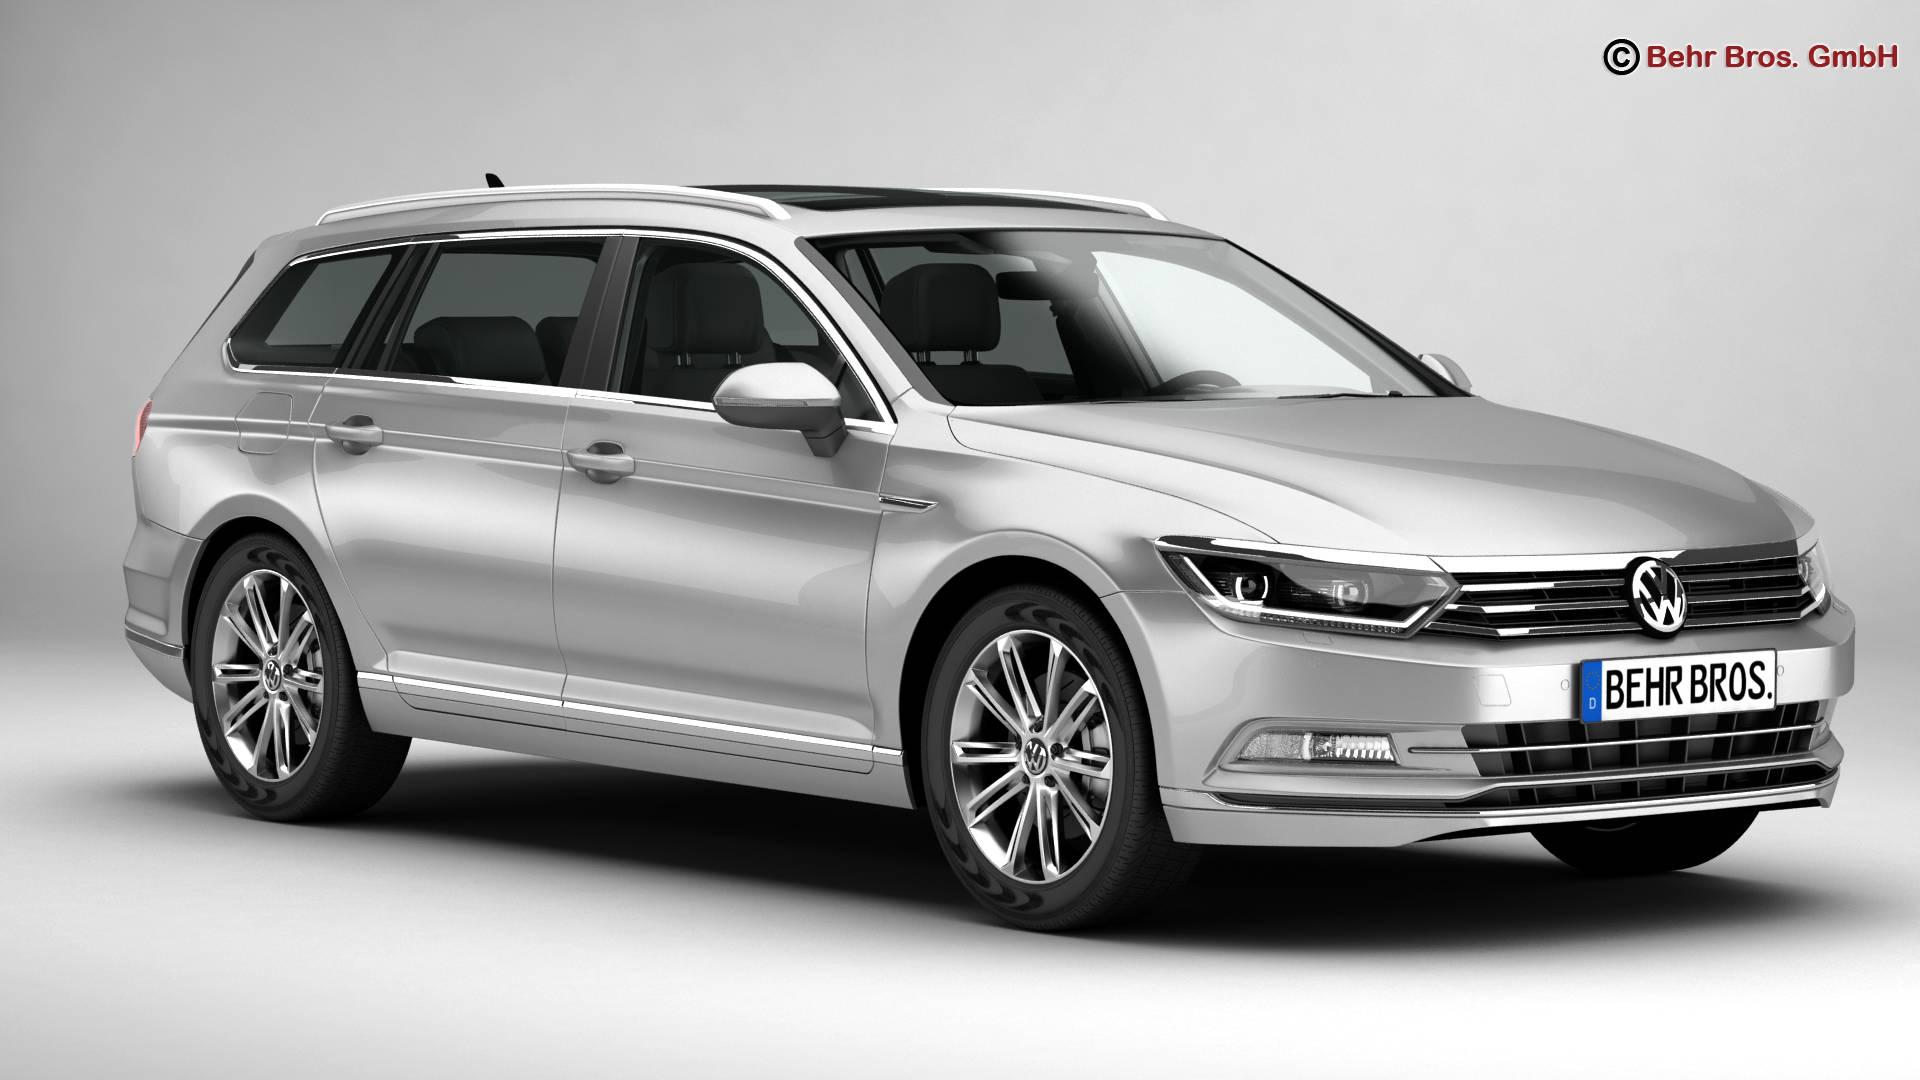 volkswagen passat variant 2015 3d model. Black Bedroom Furniture Sets. Home Design Ideas